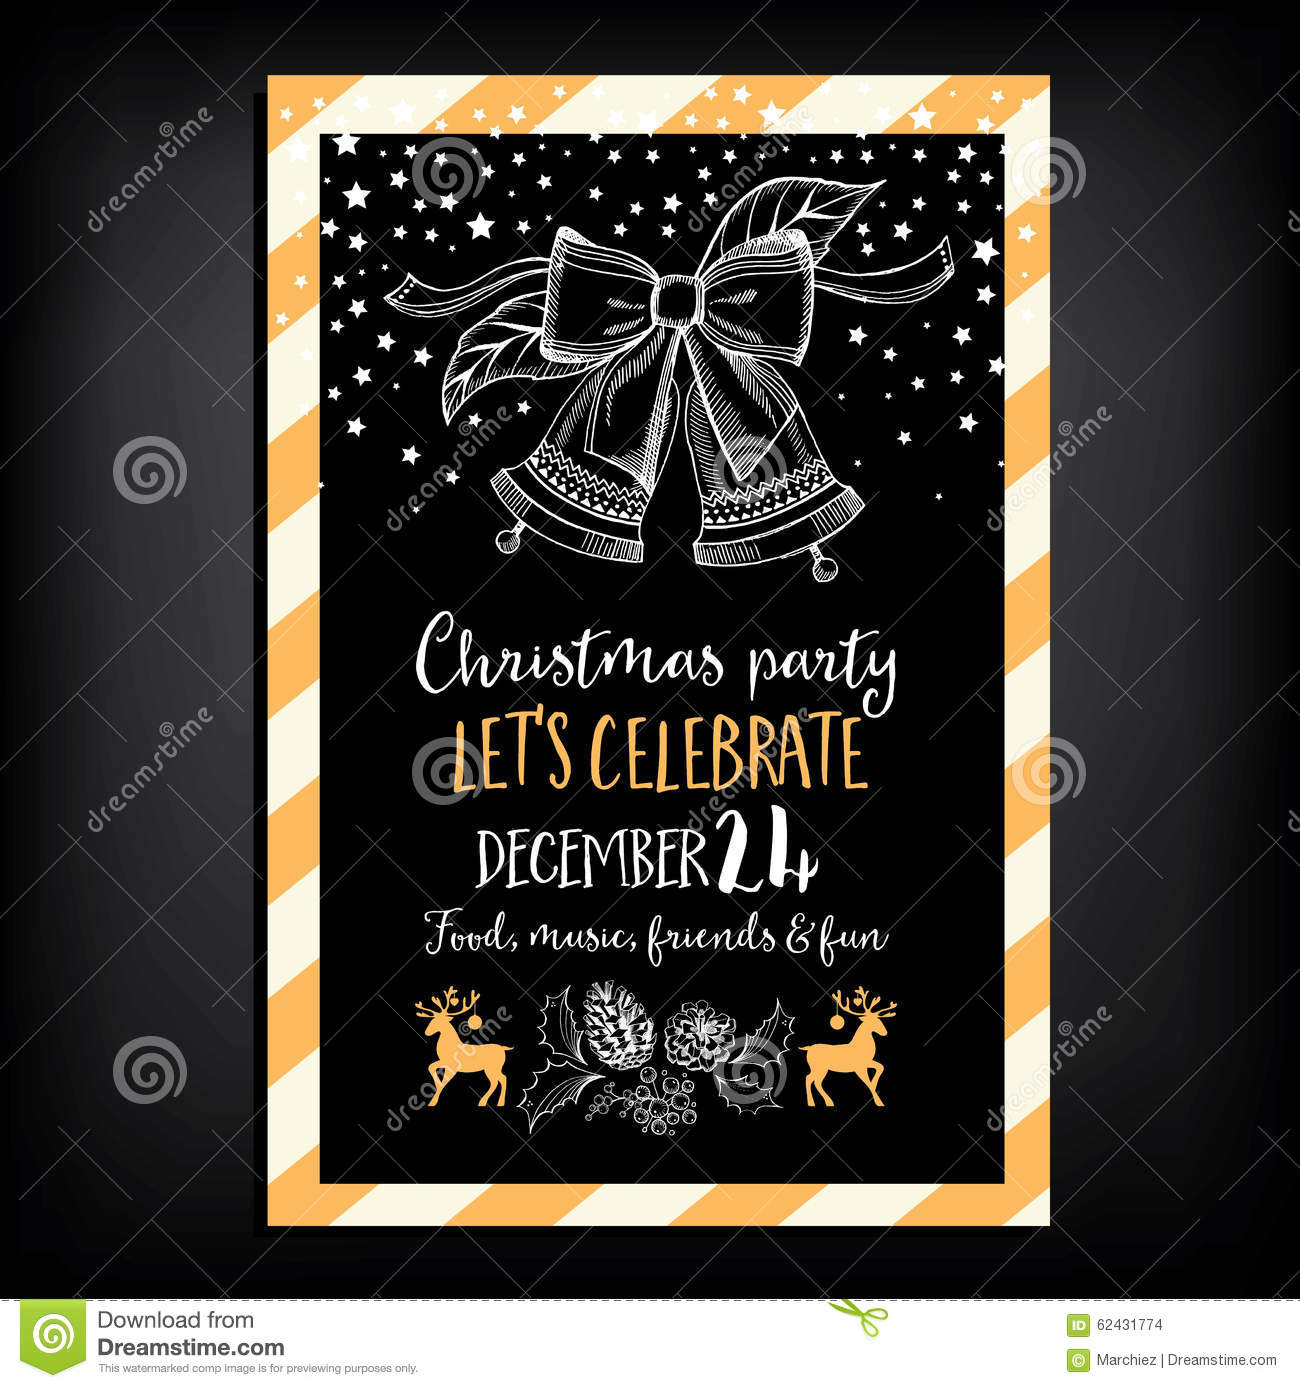 Christmas party invitation restaurant food flyer stock vector christmas party invitation restaurant food flyer stopboris Choice Image